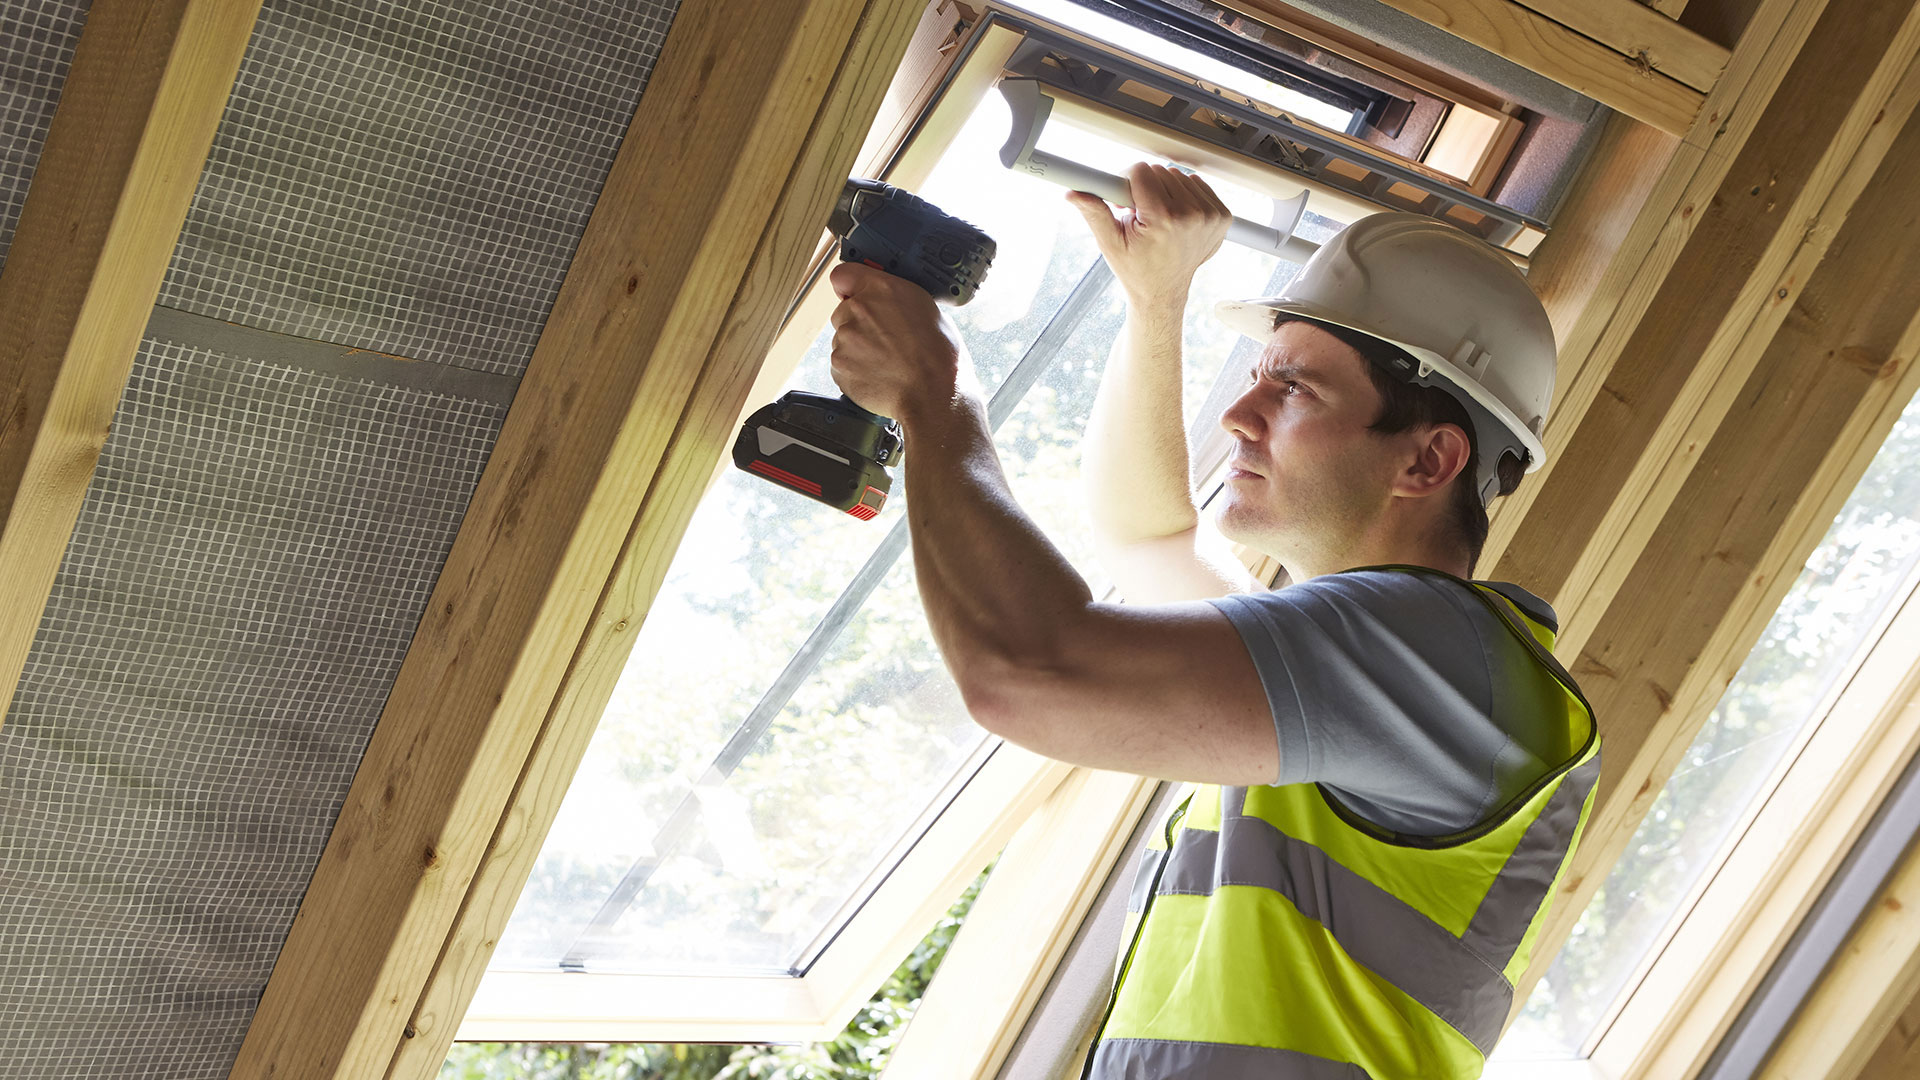 We provide specialist insurance for trades. Call 01709 881717 or click here to find out more.